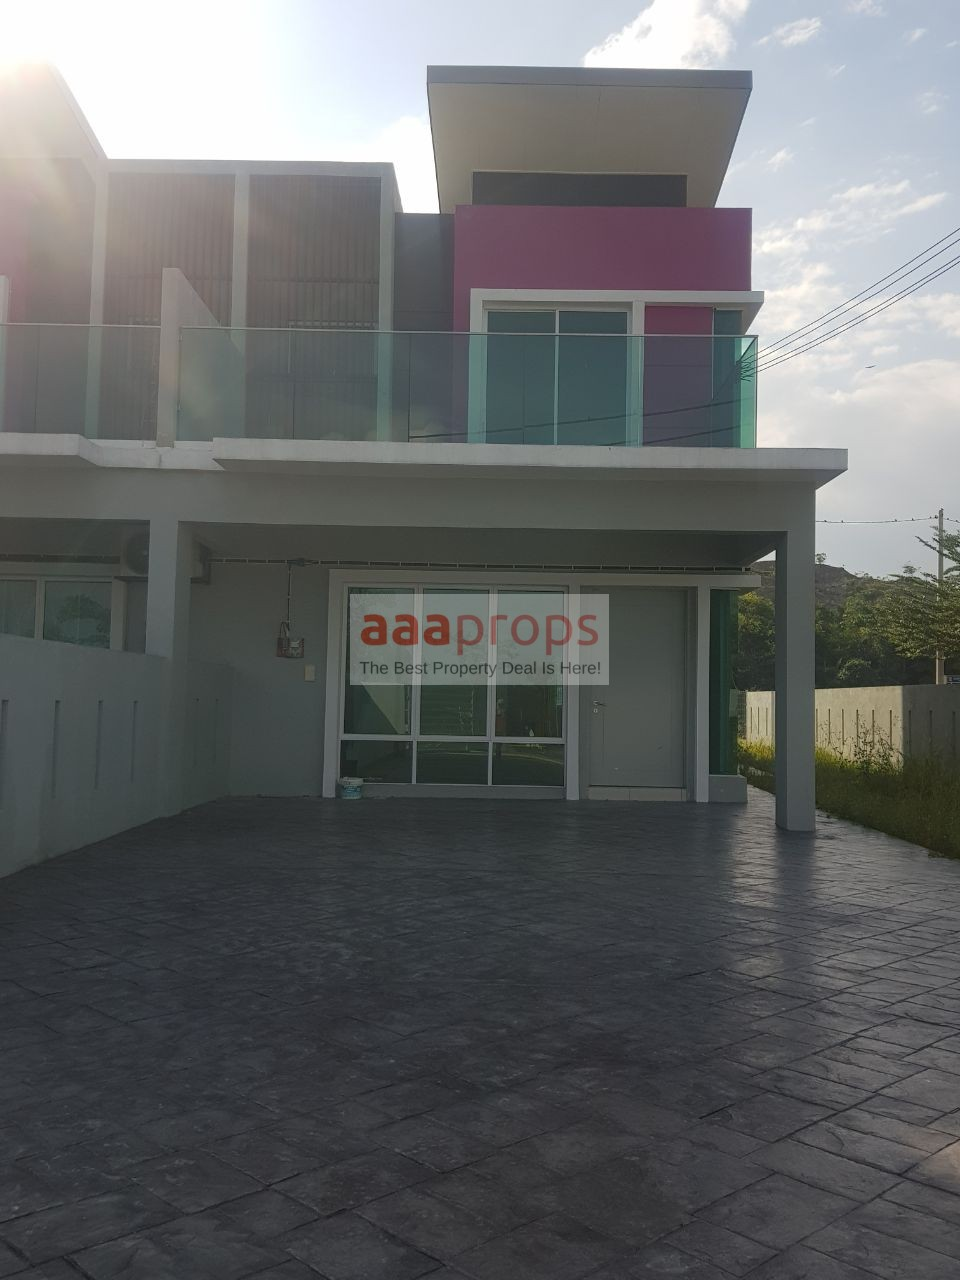 2 Storey Terrace House End lot MUTIARA KERUING, DESA PUTRA SUNGAI MERAB